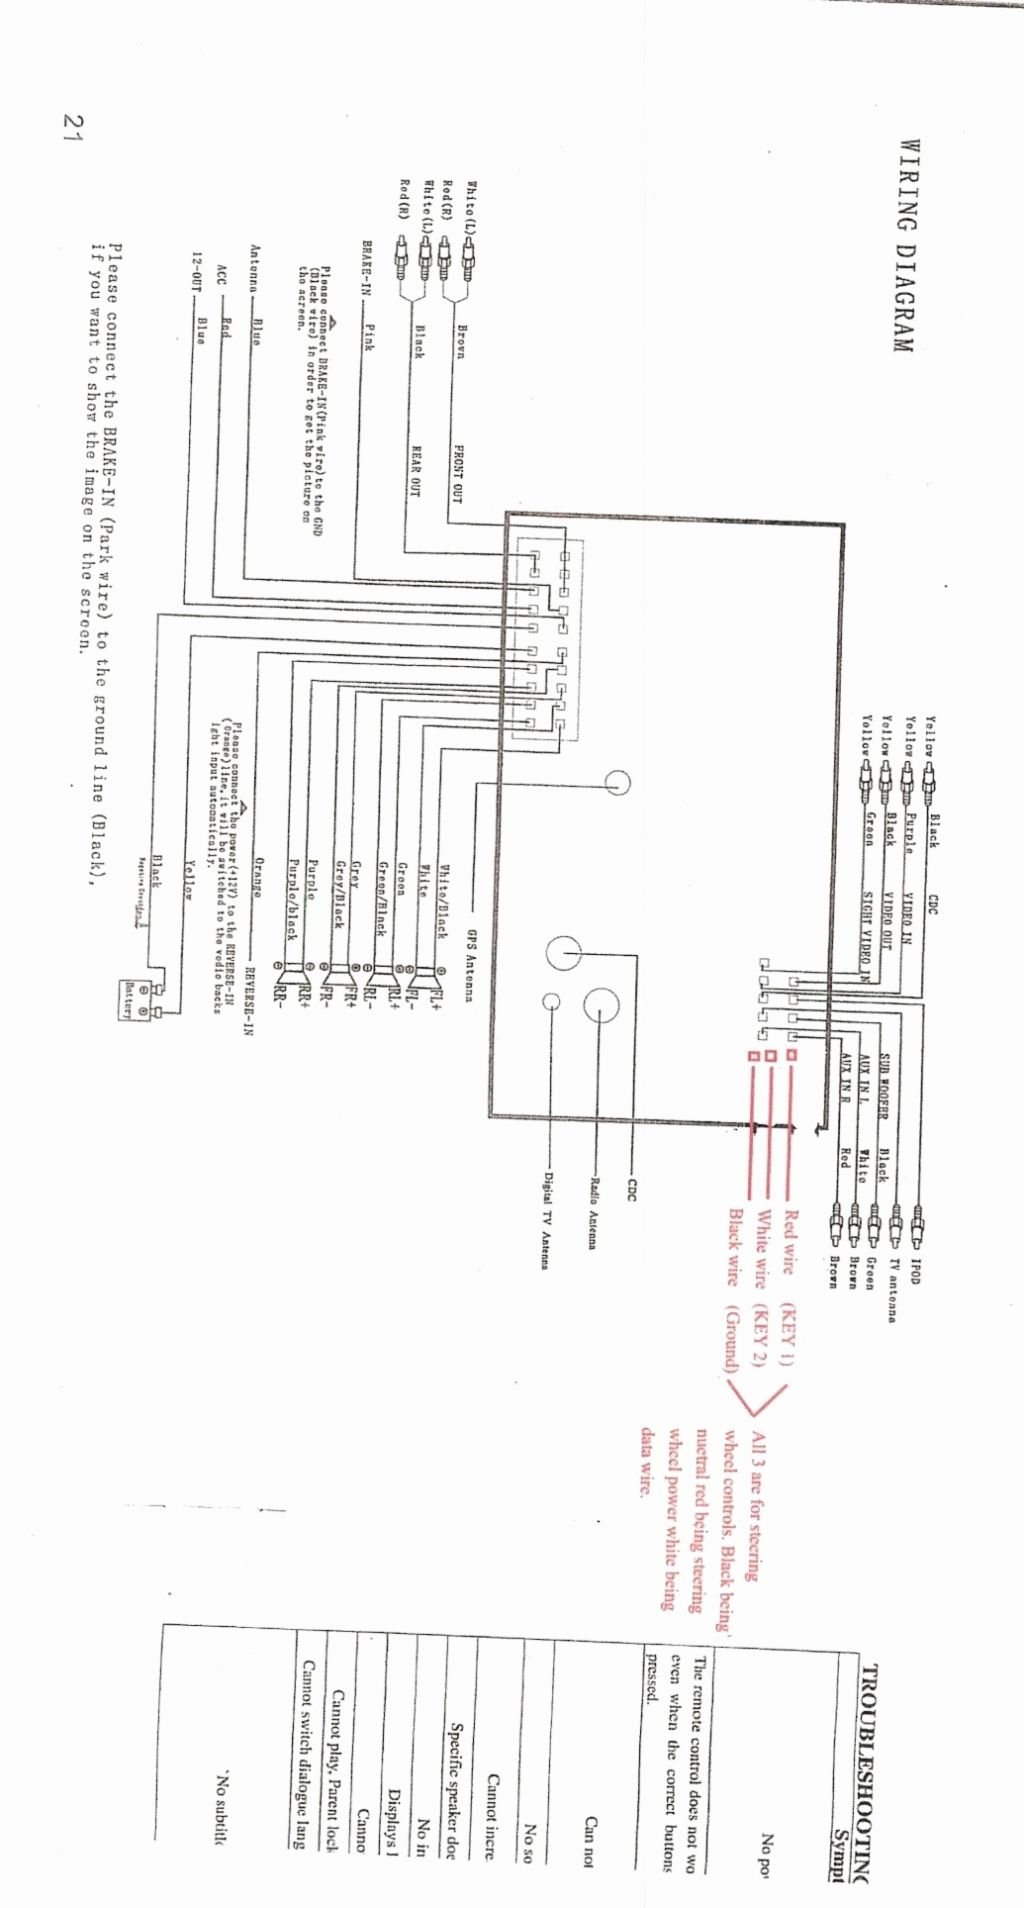 lennox furnace wiring diagram 16 g